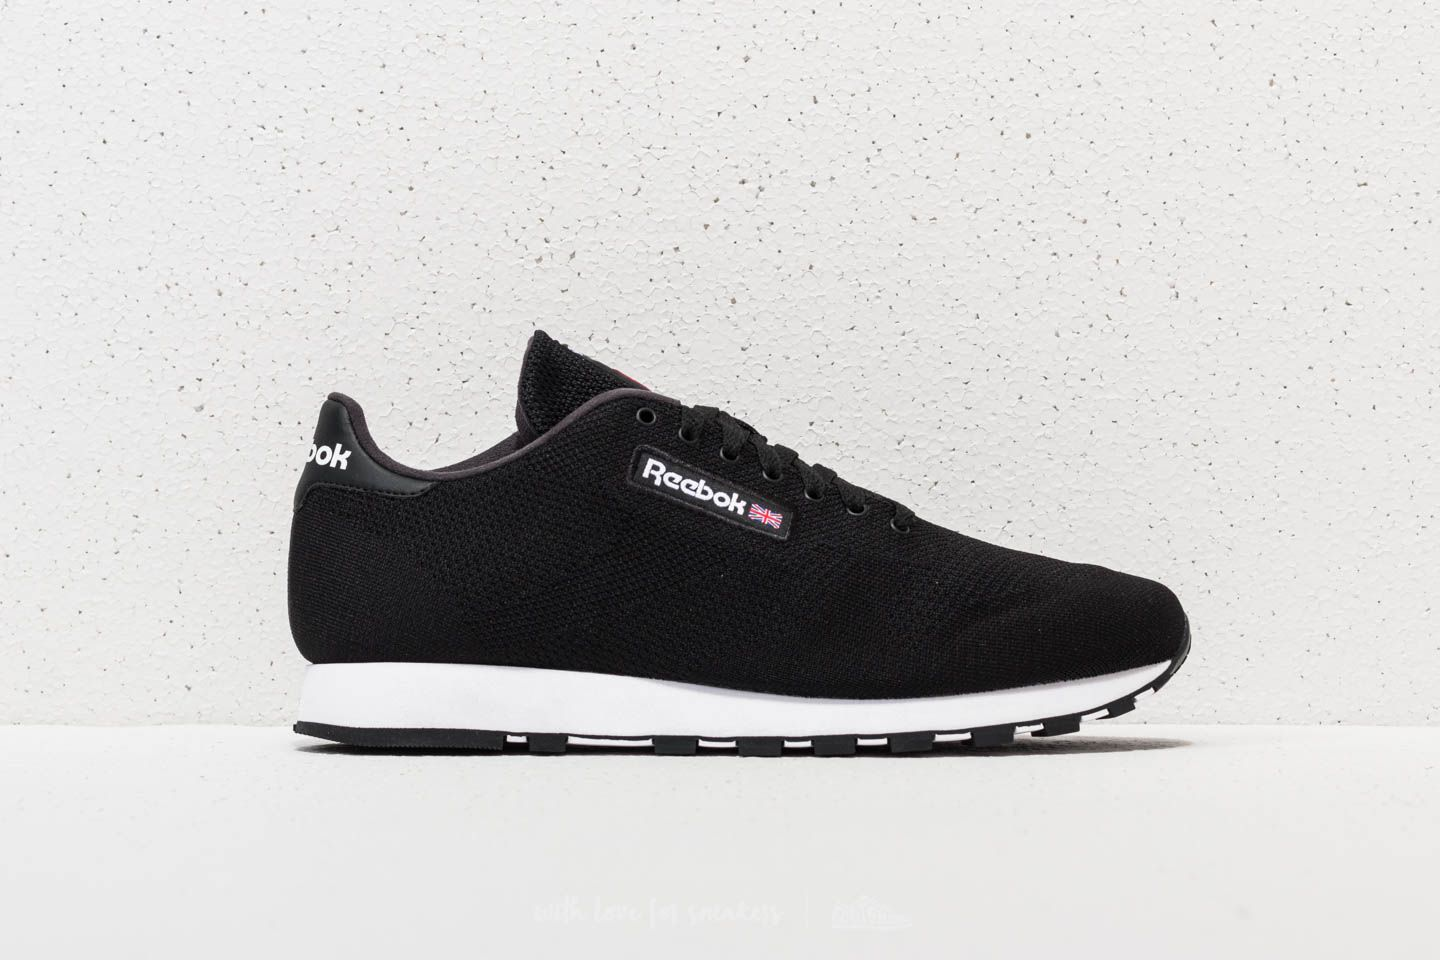 0159ac5039115 Reebok Classic Leather Ultraknit Black  White at a great price £47 buy at  Footshop